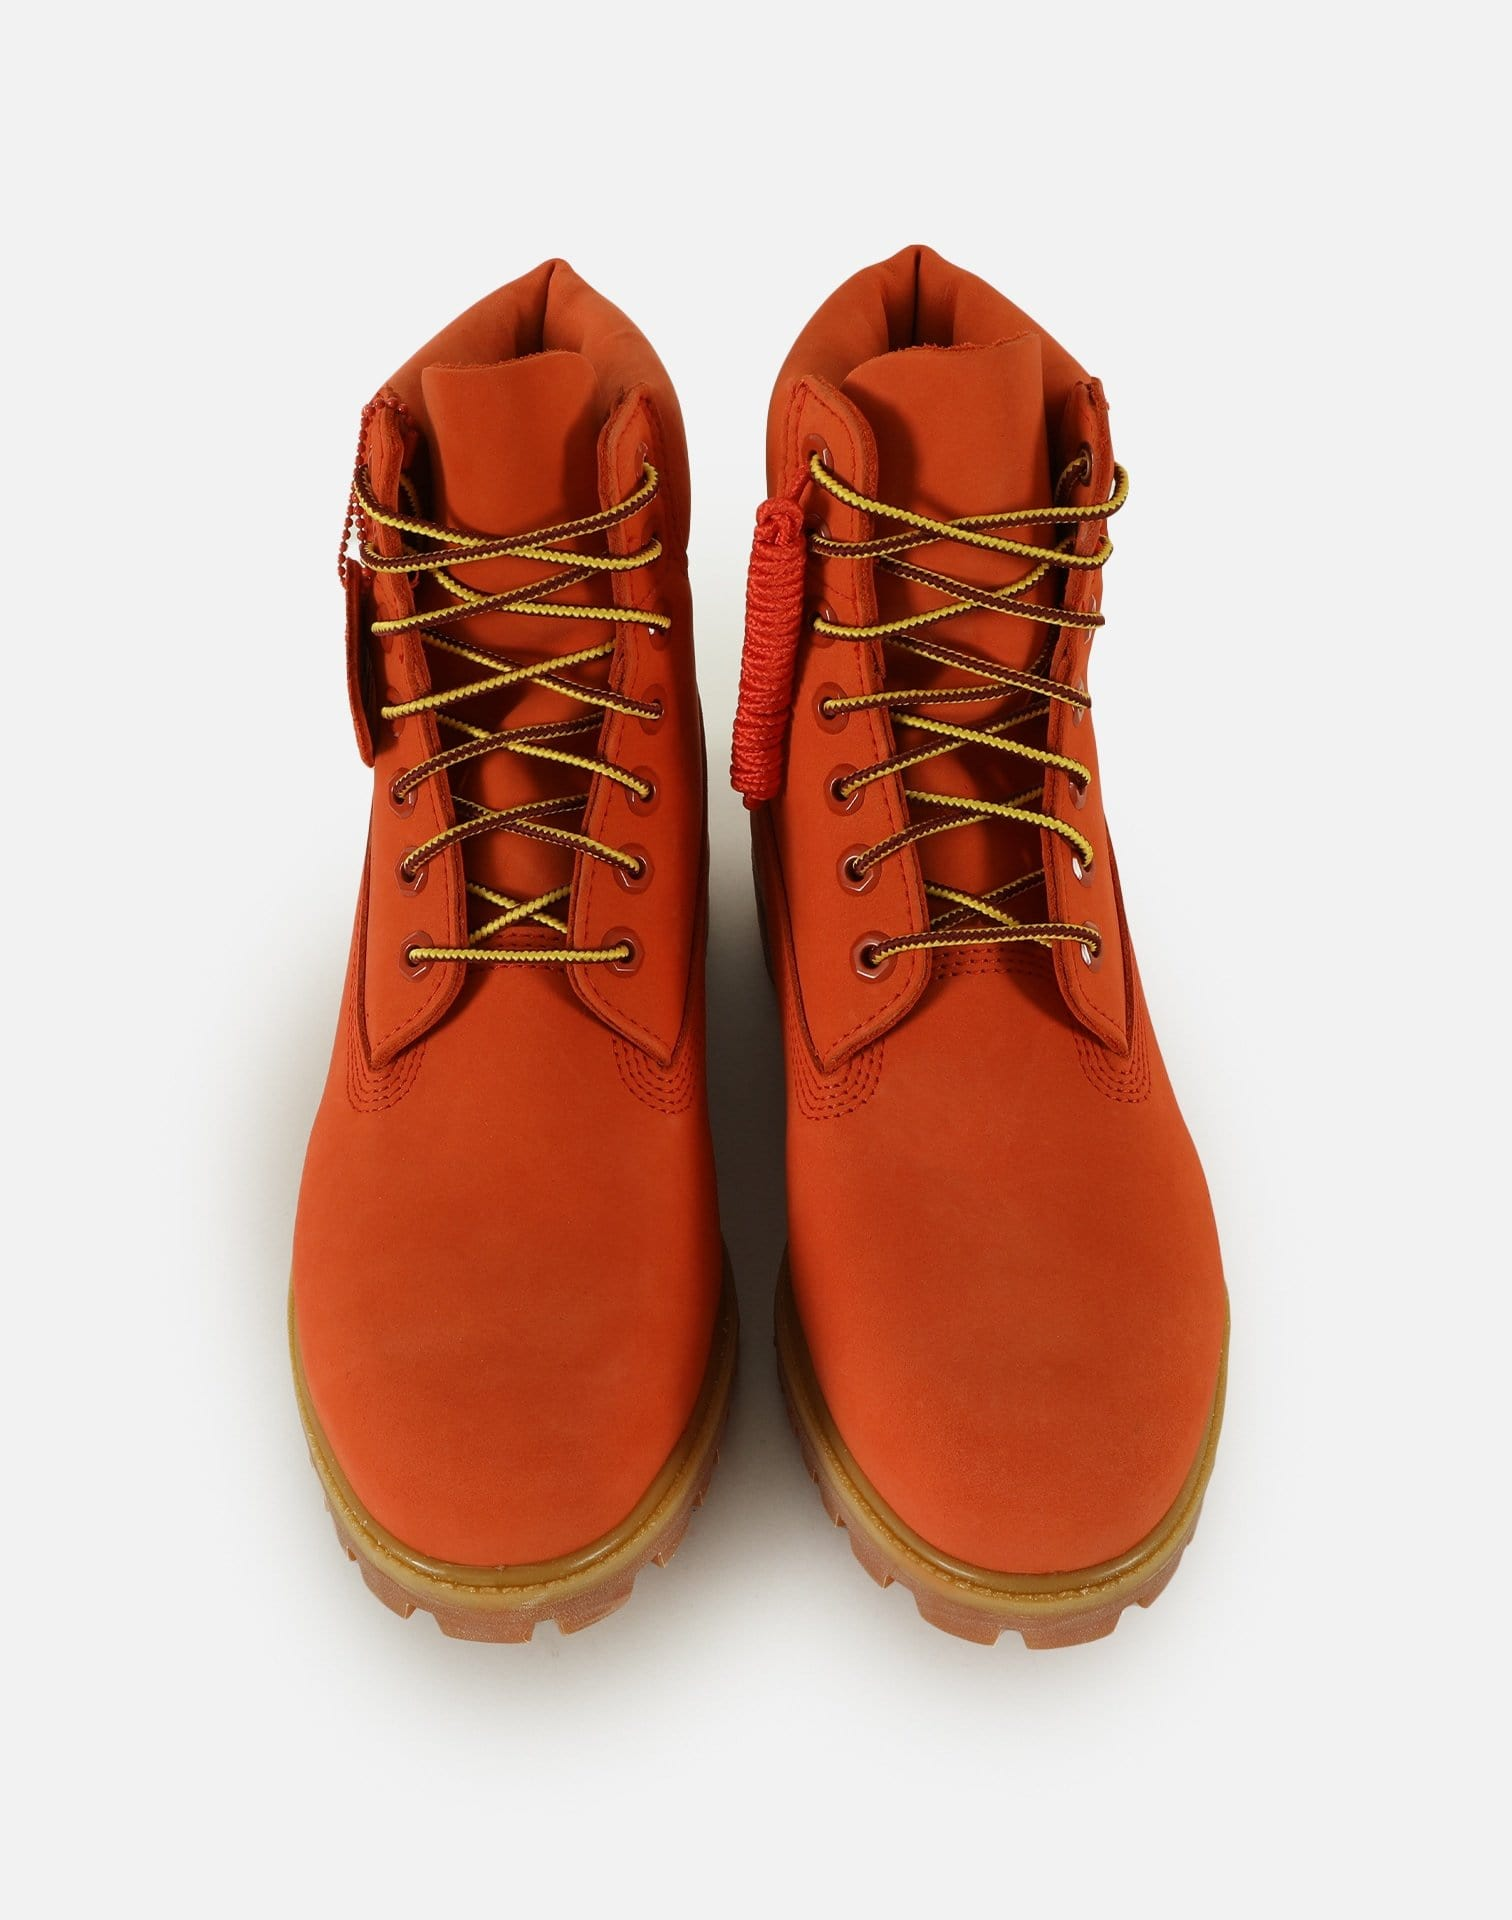 Timberland x DTLR Exclusive Men's 6-Inch Premium Waterproof 'Orange Blaze' Boots